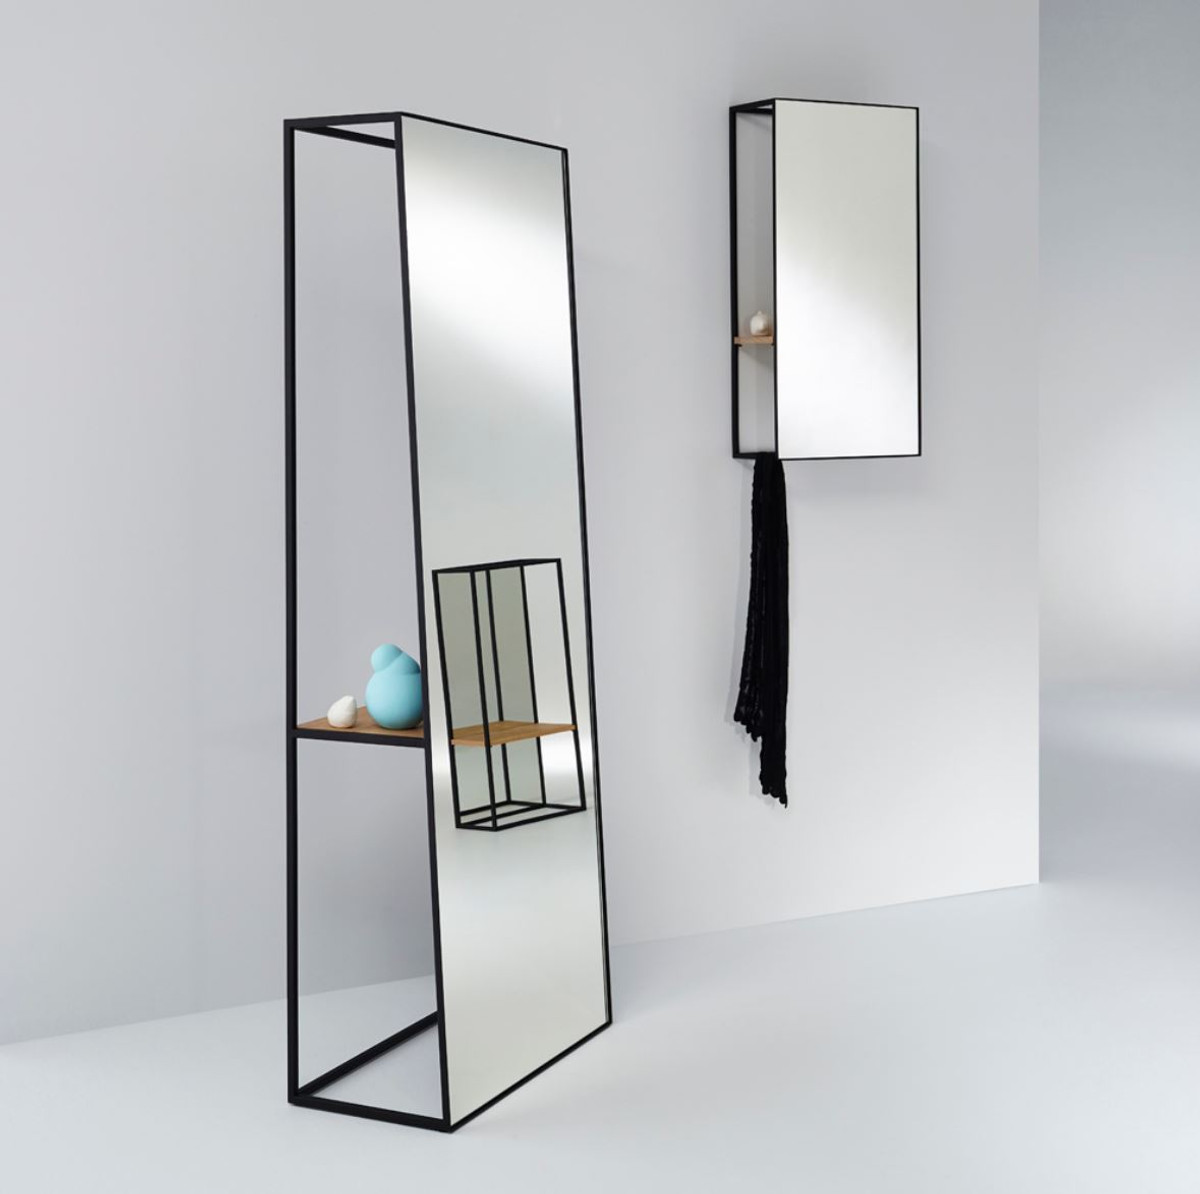 Casa padrino luxury wall mirror with shelf 40 x 17 x h 80 for Miroir 40 x 80